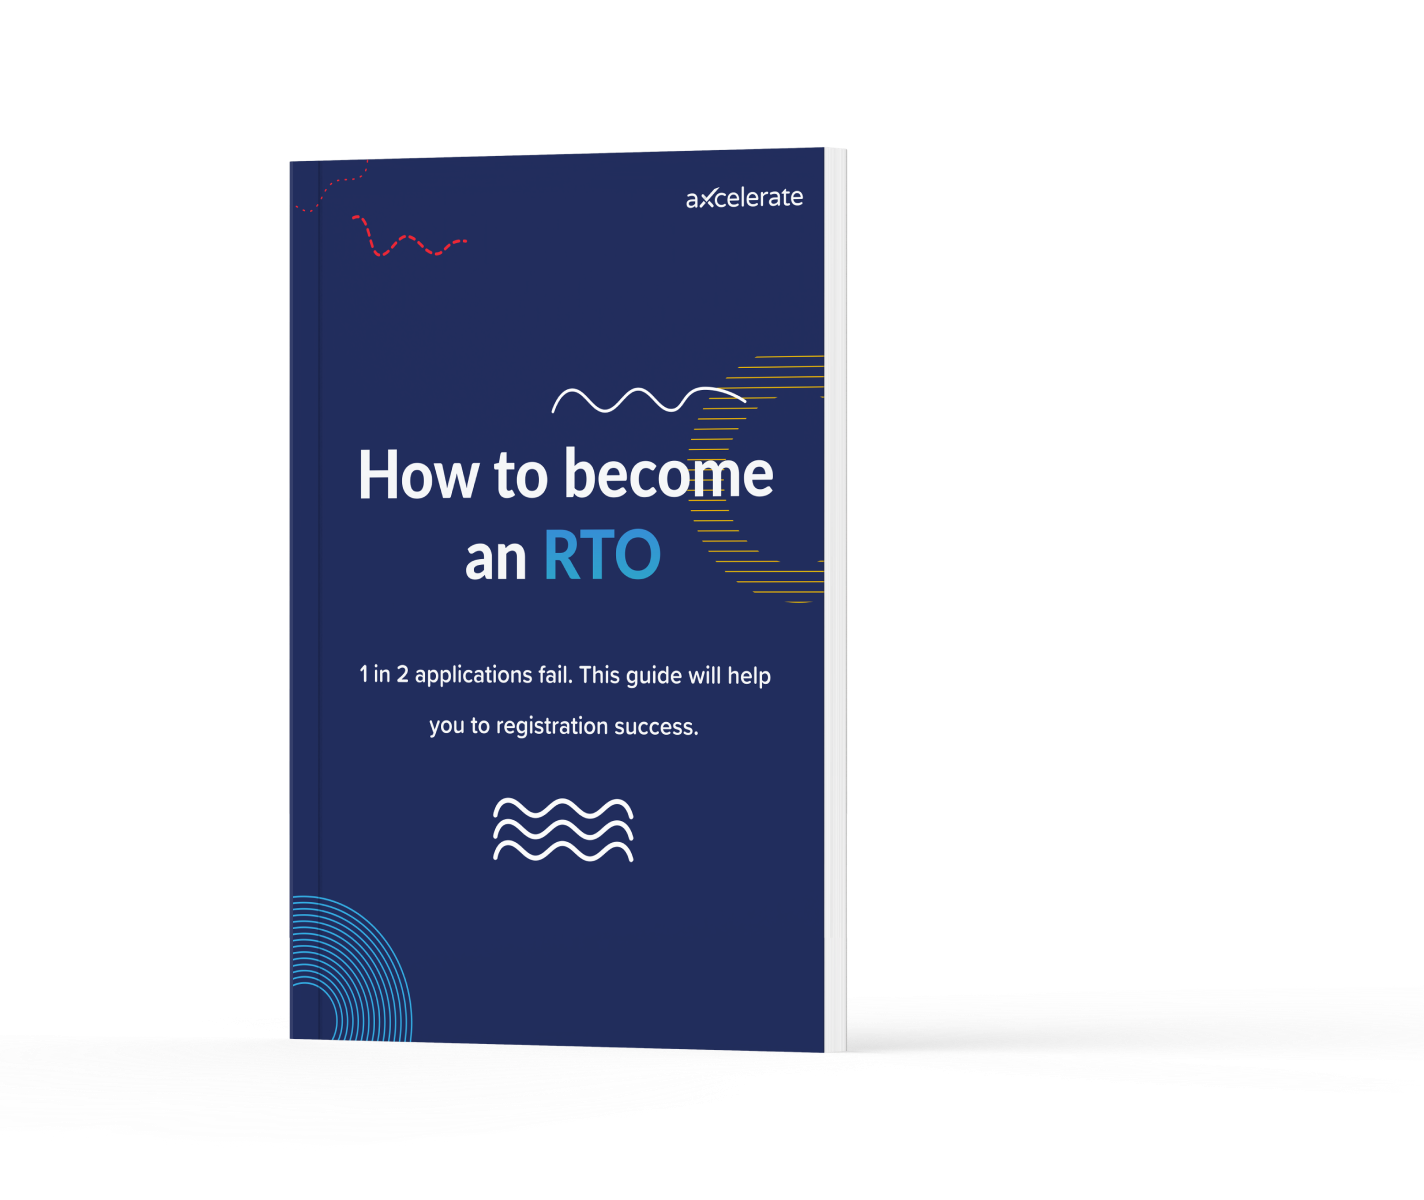 Everything you need to become an RTO